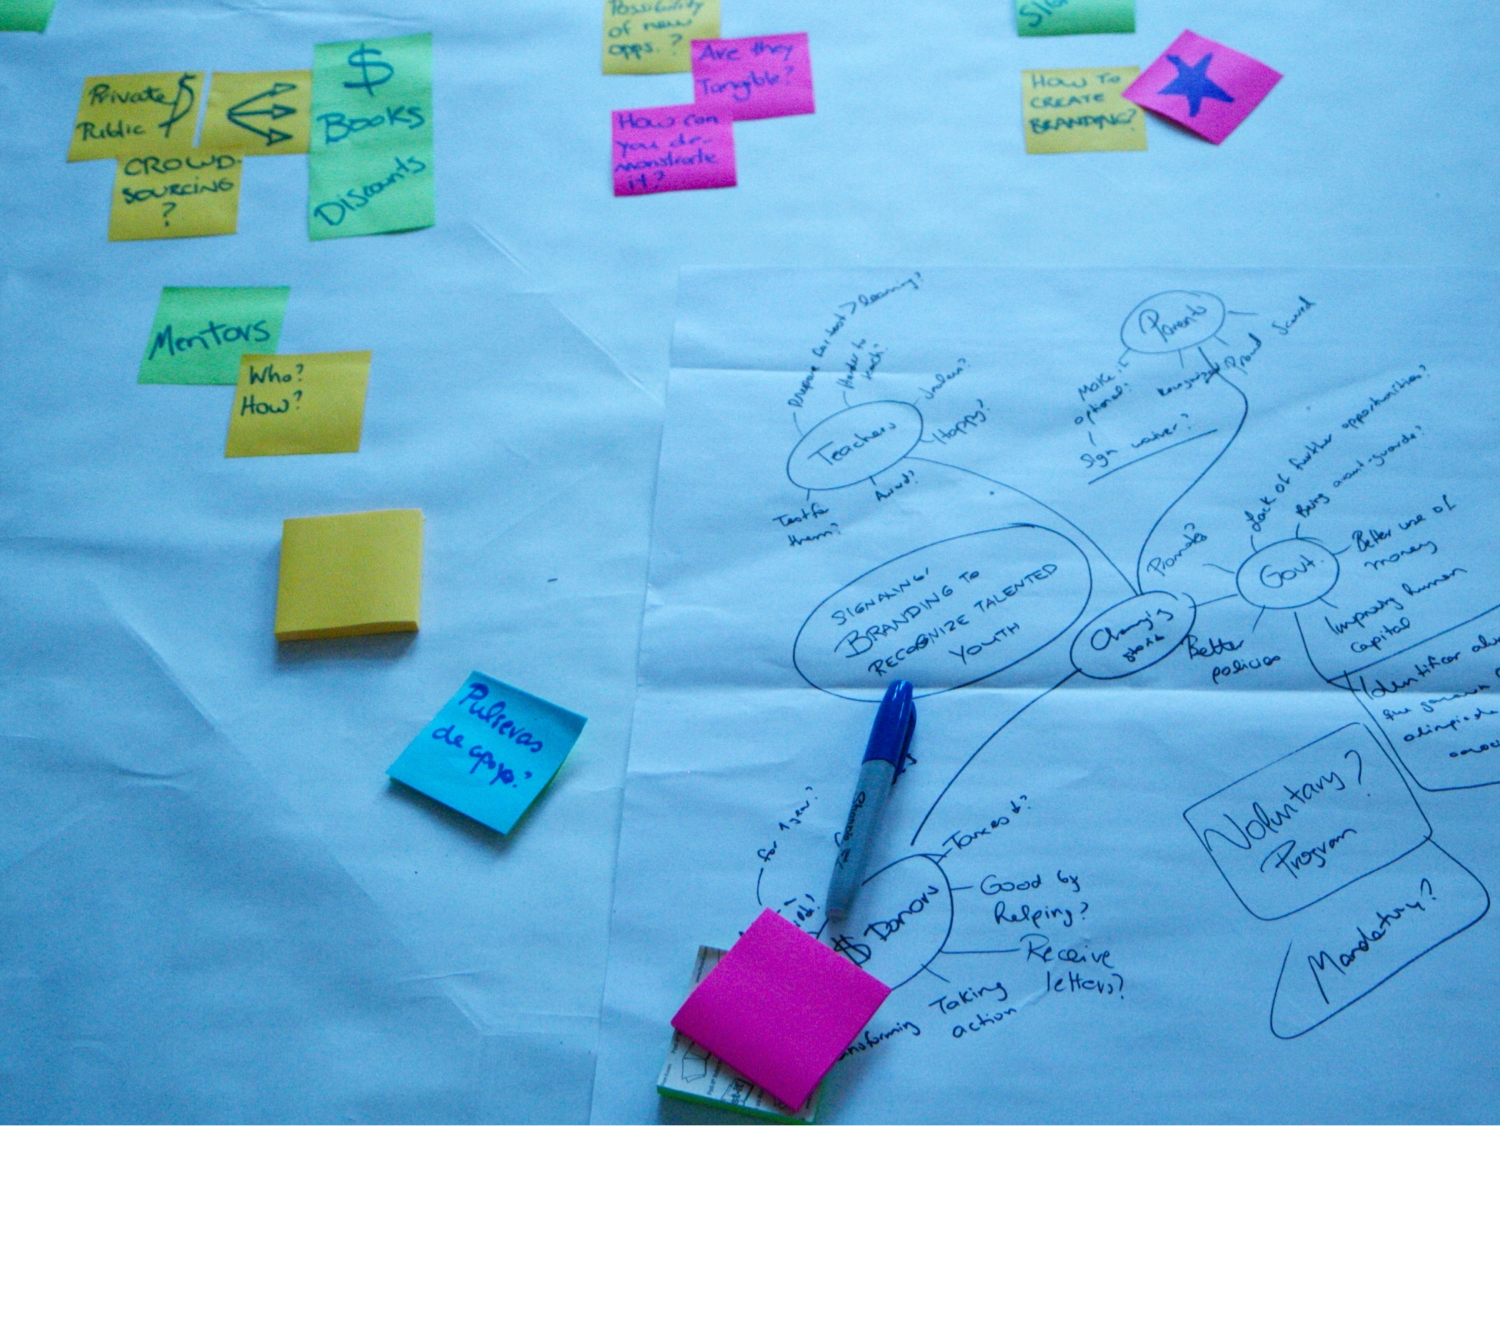 design thinking 2.png